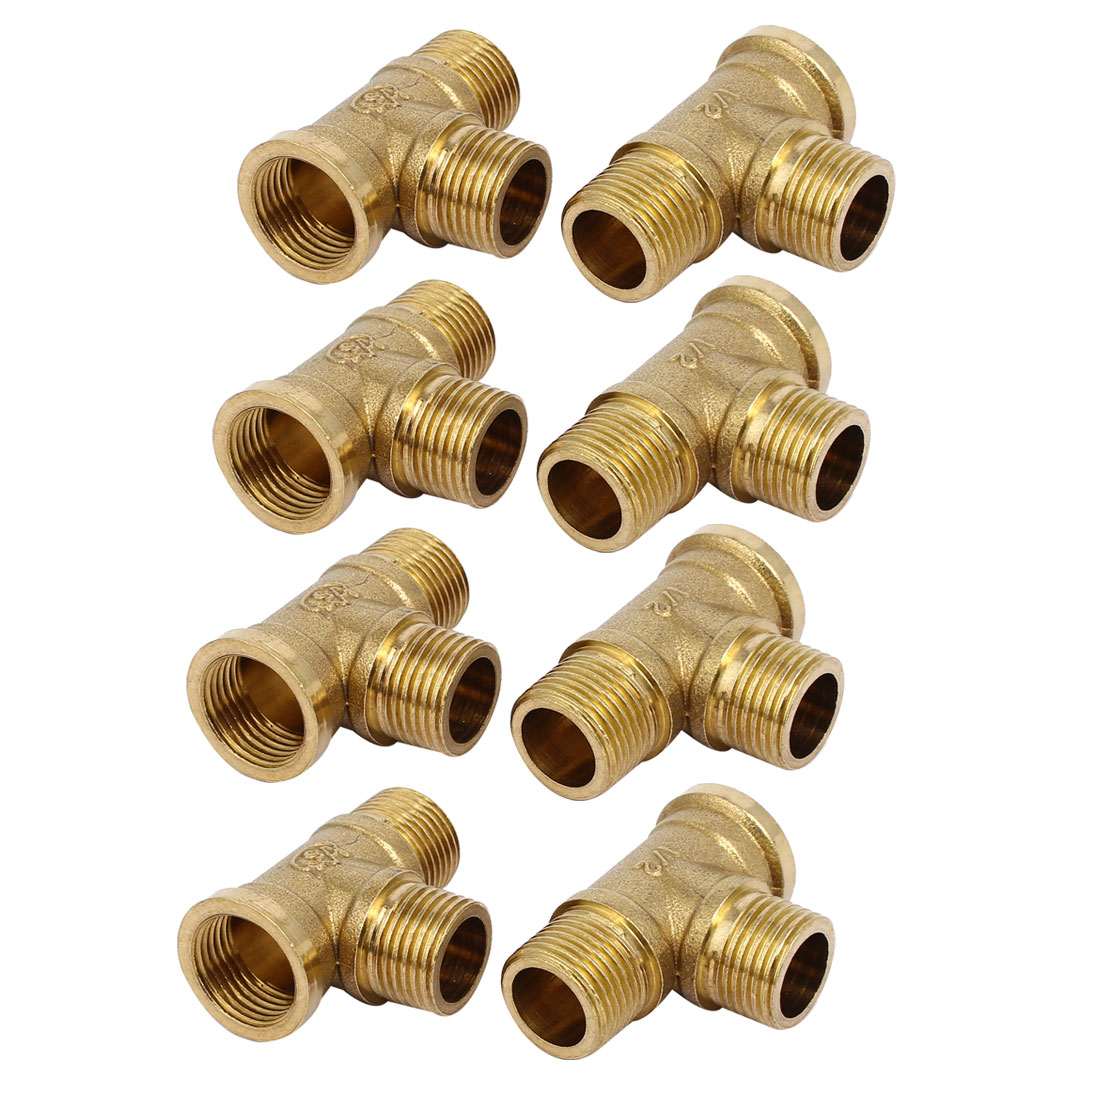 1/2BSP Male to Female Thread Brass Pipe Fittings Coupling Connectors Jointers 8pcs